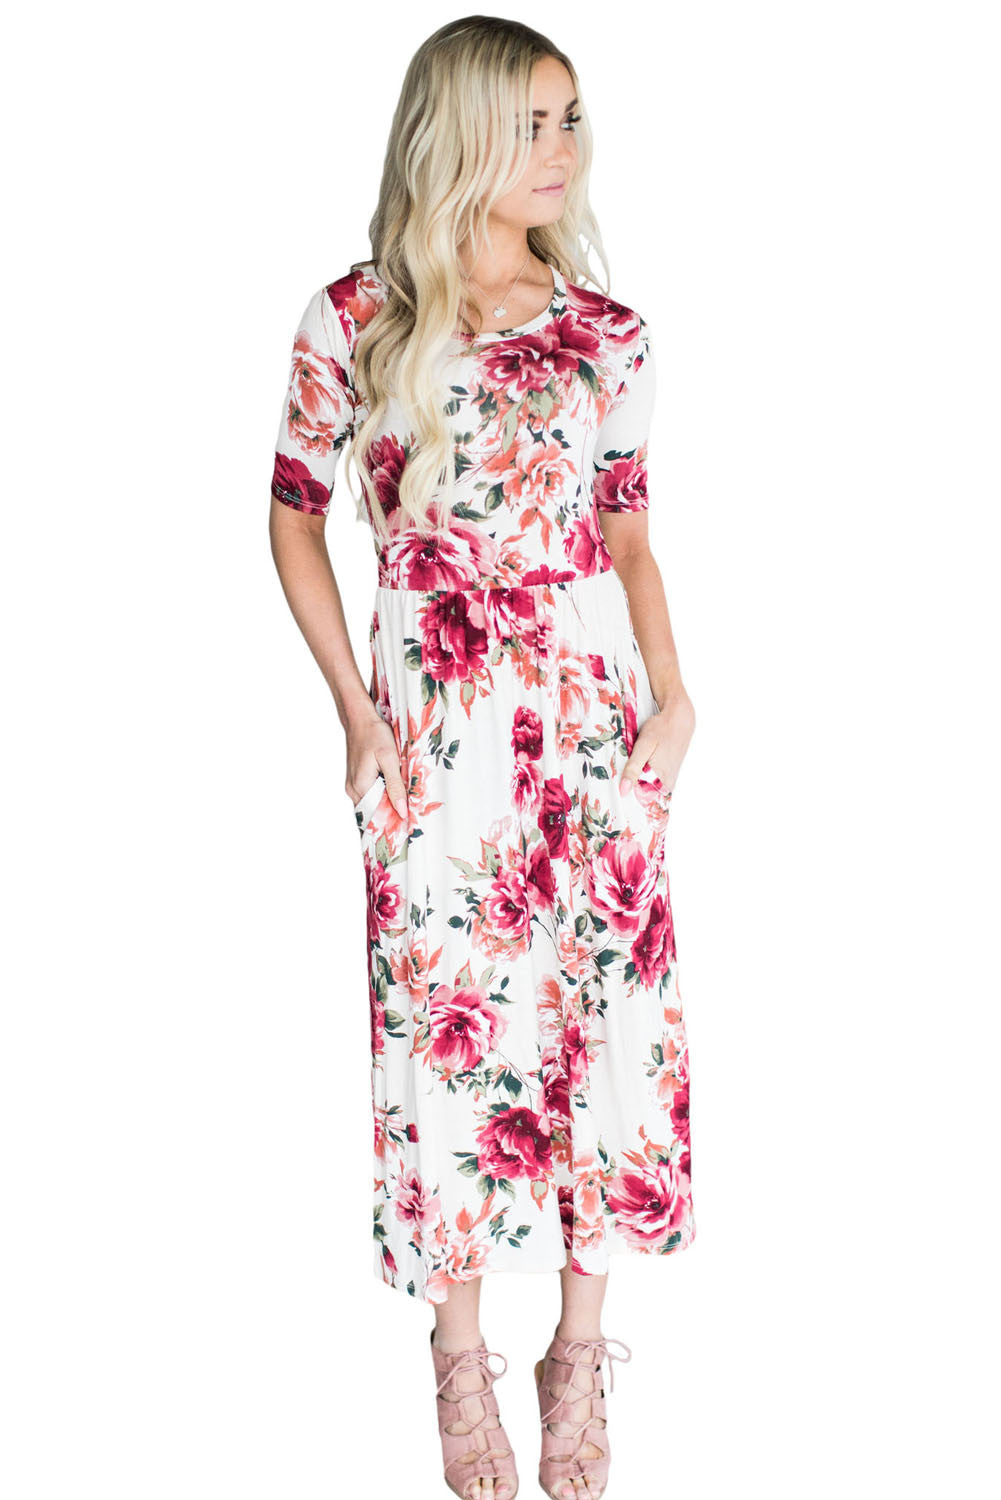 Casual Pocket Design Blooming Floral Dress LAVELIQ